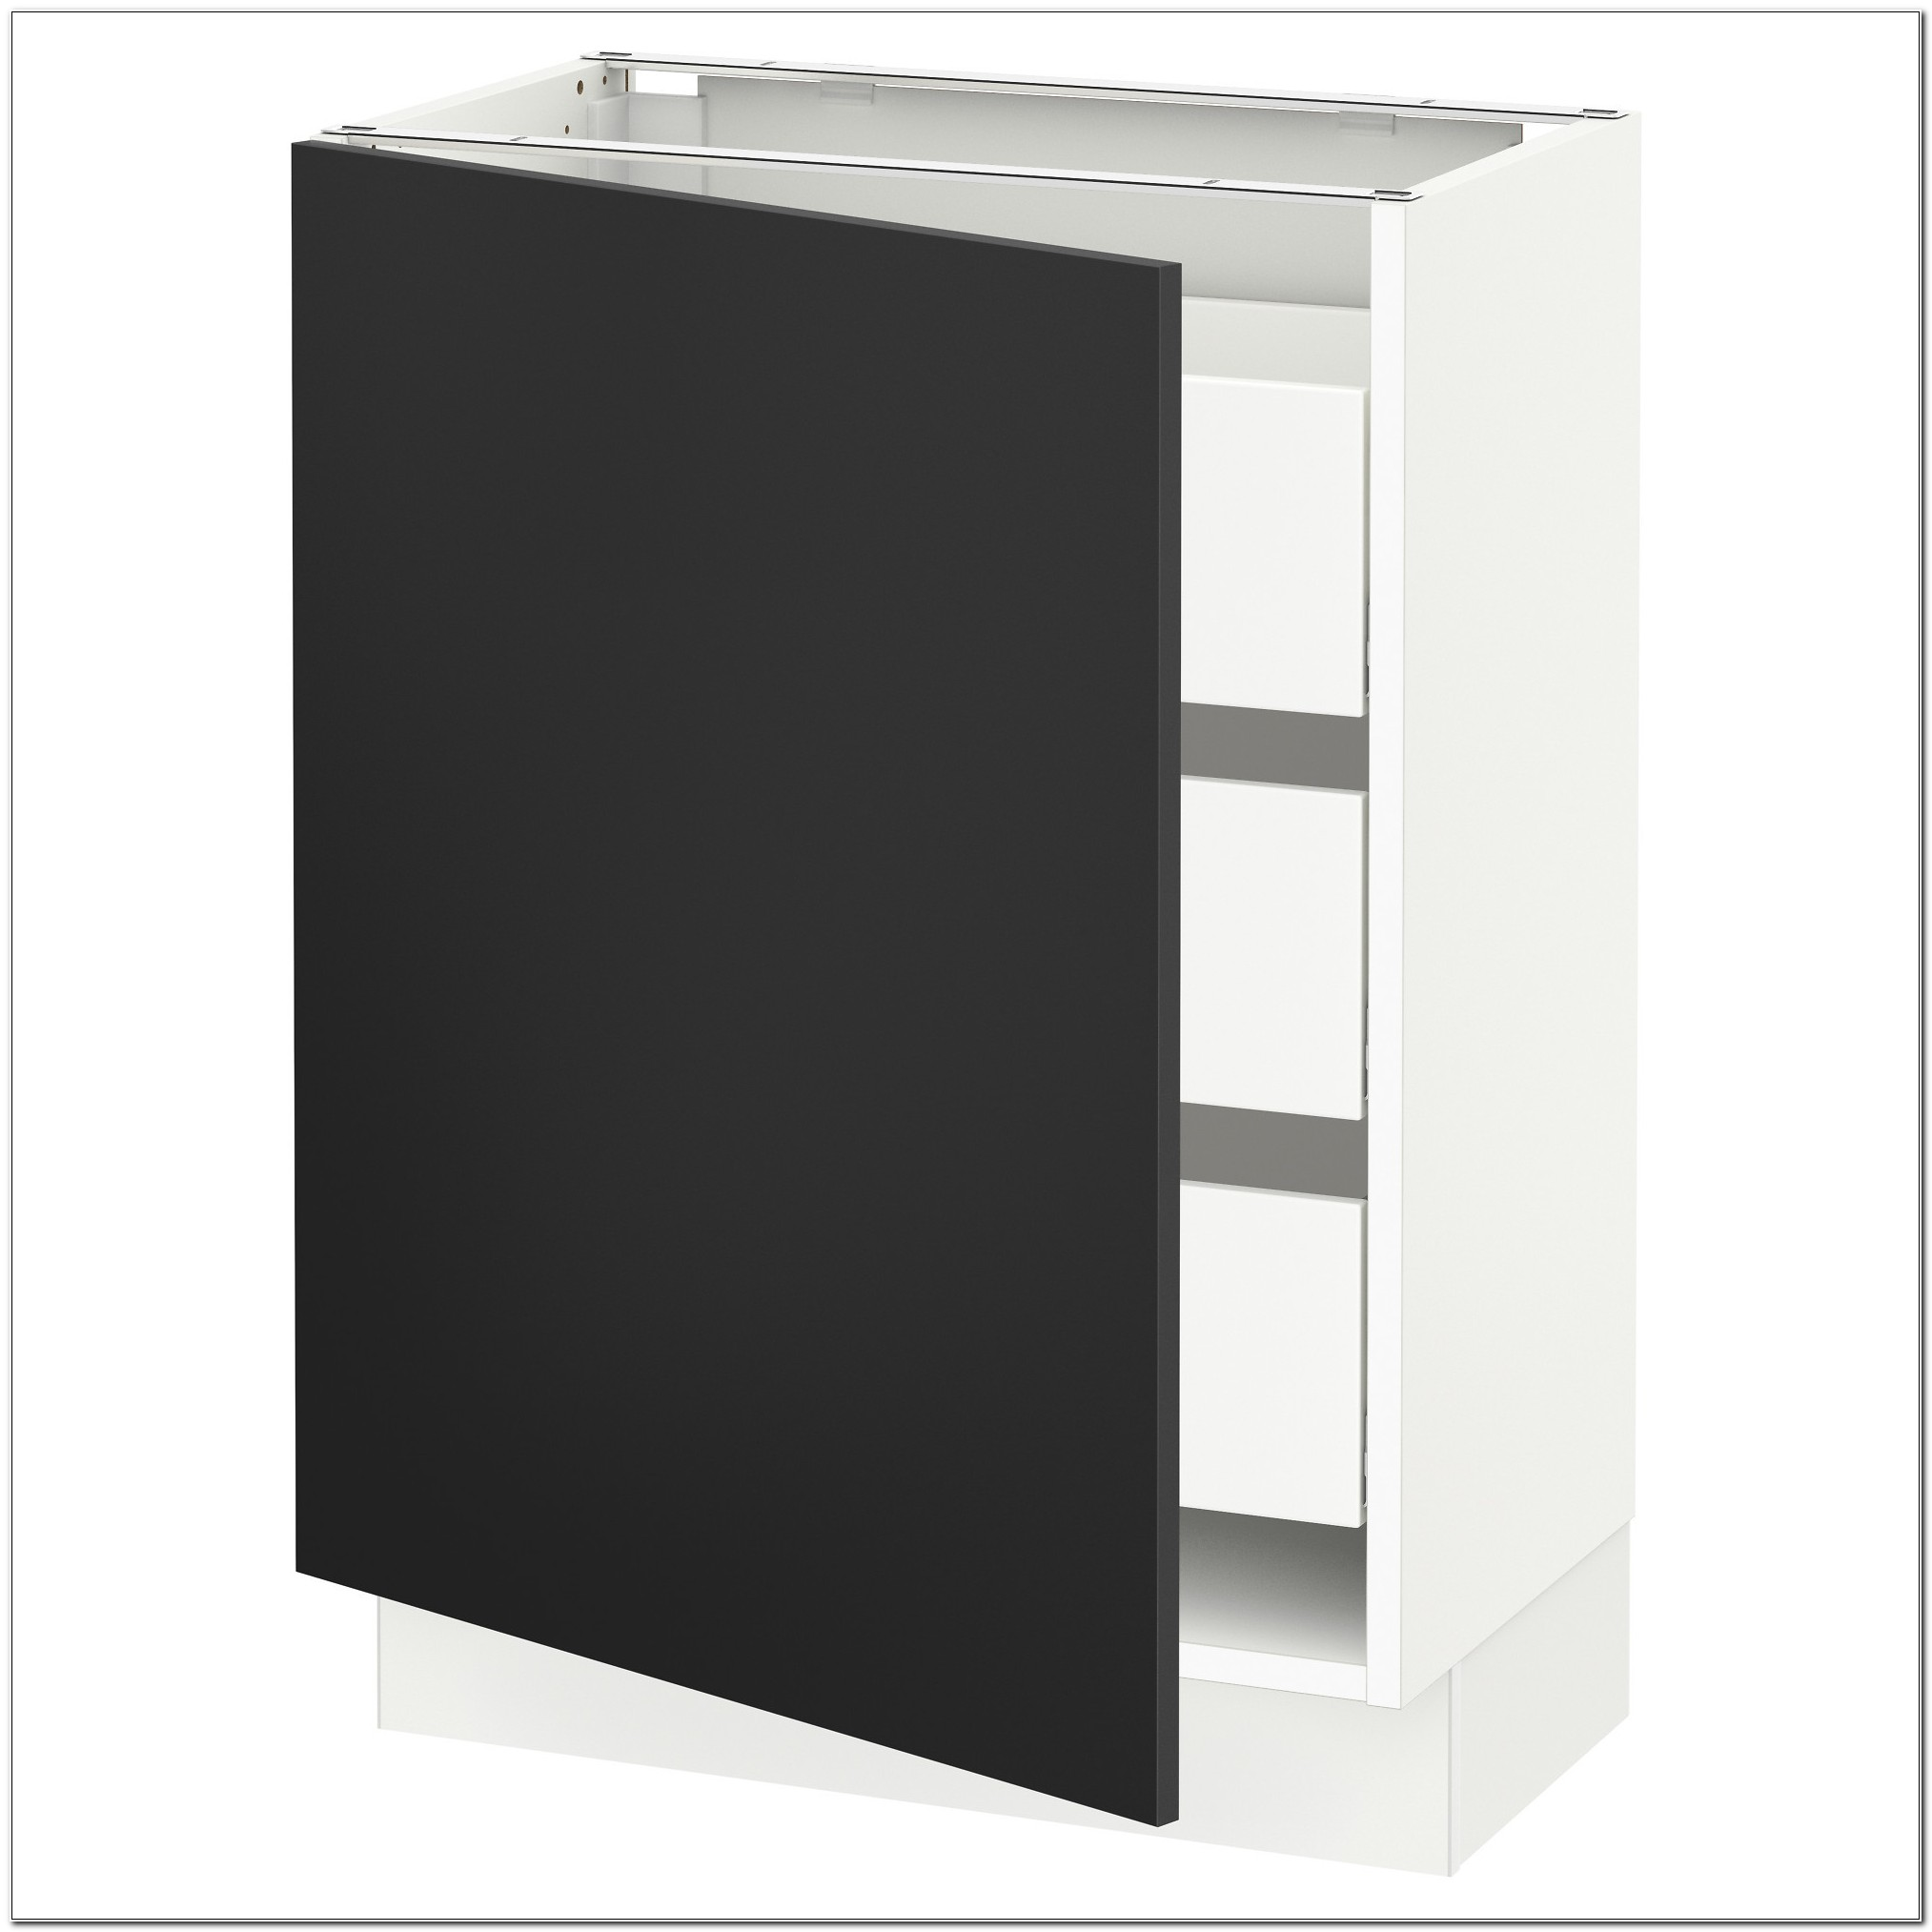 12 Inch Deep Base Cabinets With Drawers - Cabinet : Home ...